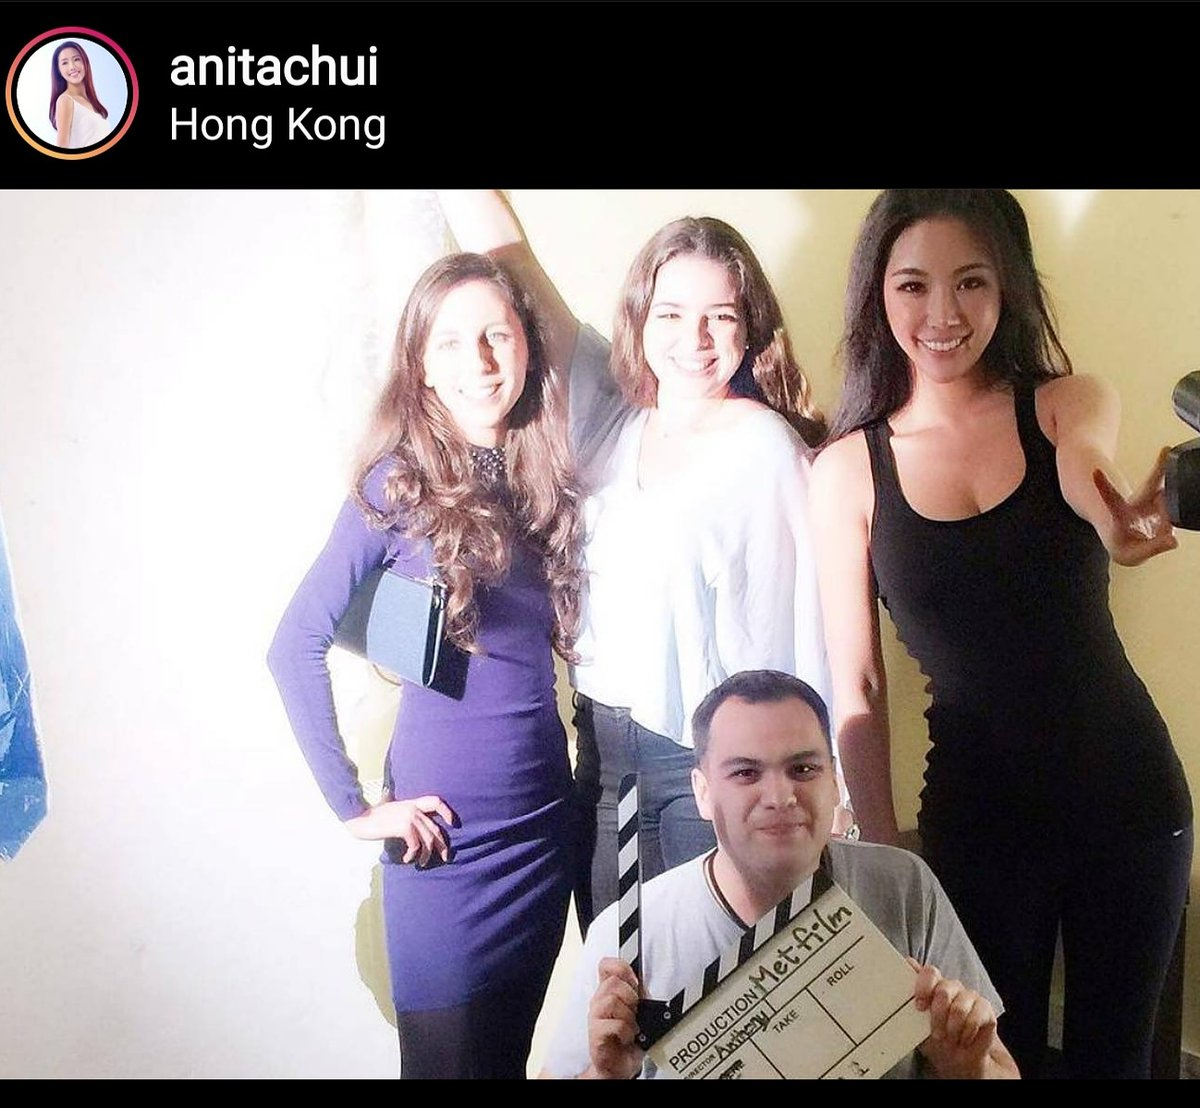 Thanks for the #happymemories Anita Chui ...3 years ago today I embarked on a mission to #better my #actingskills. 8 years later, 5 self produced #shortfilms , 20 odd #international #filmfestival #feature and 4 #Awards i'm still at it! #doitdontquit #downtoearth #samactproduced